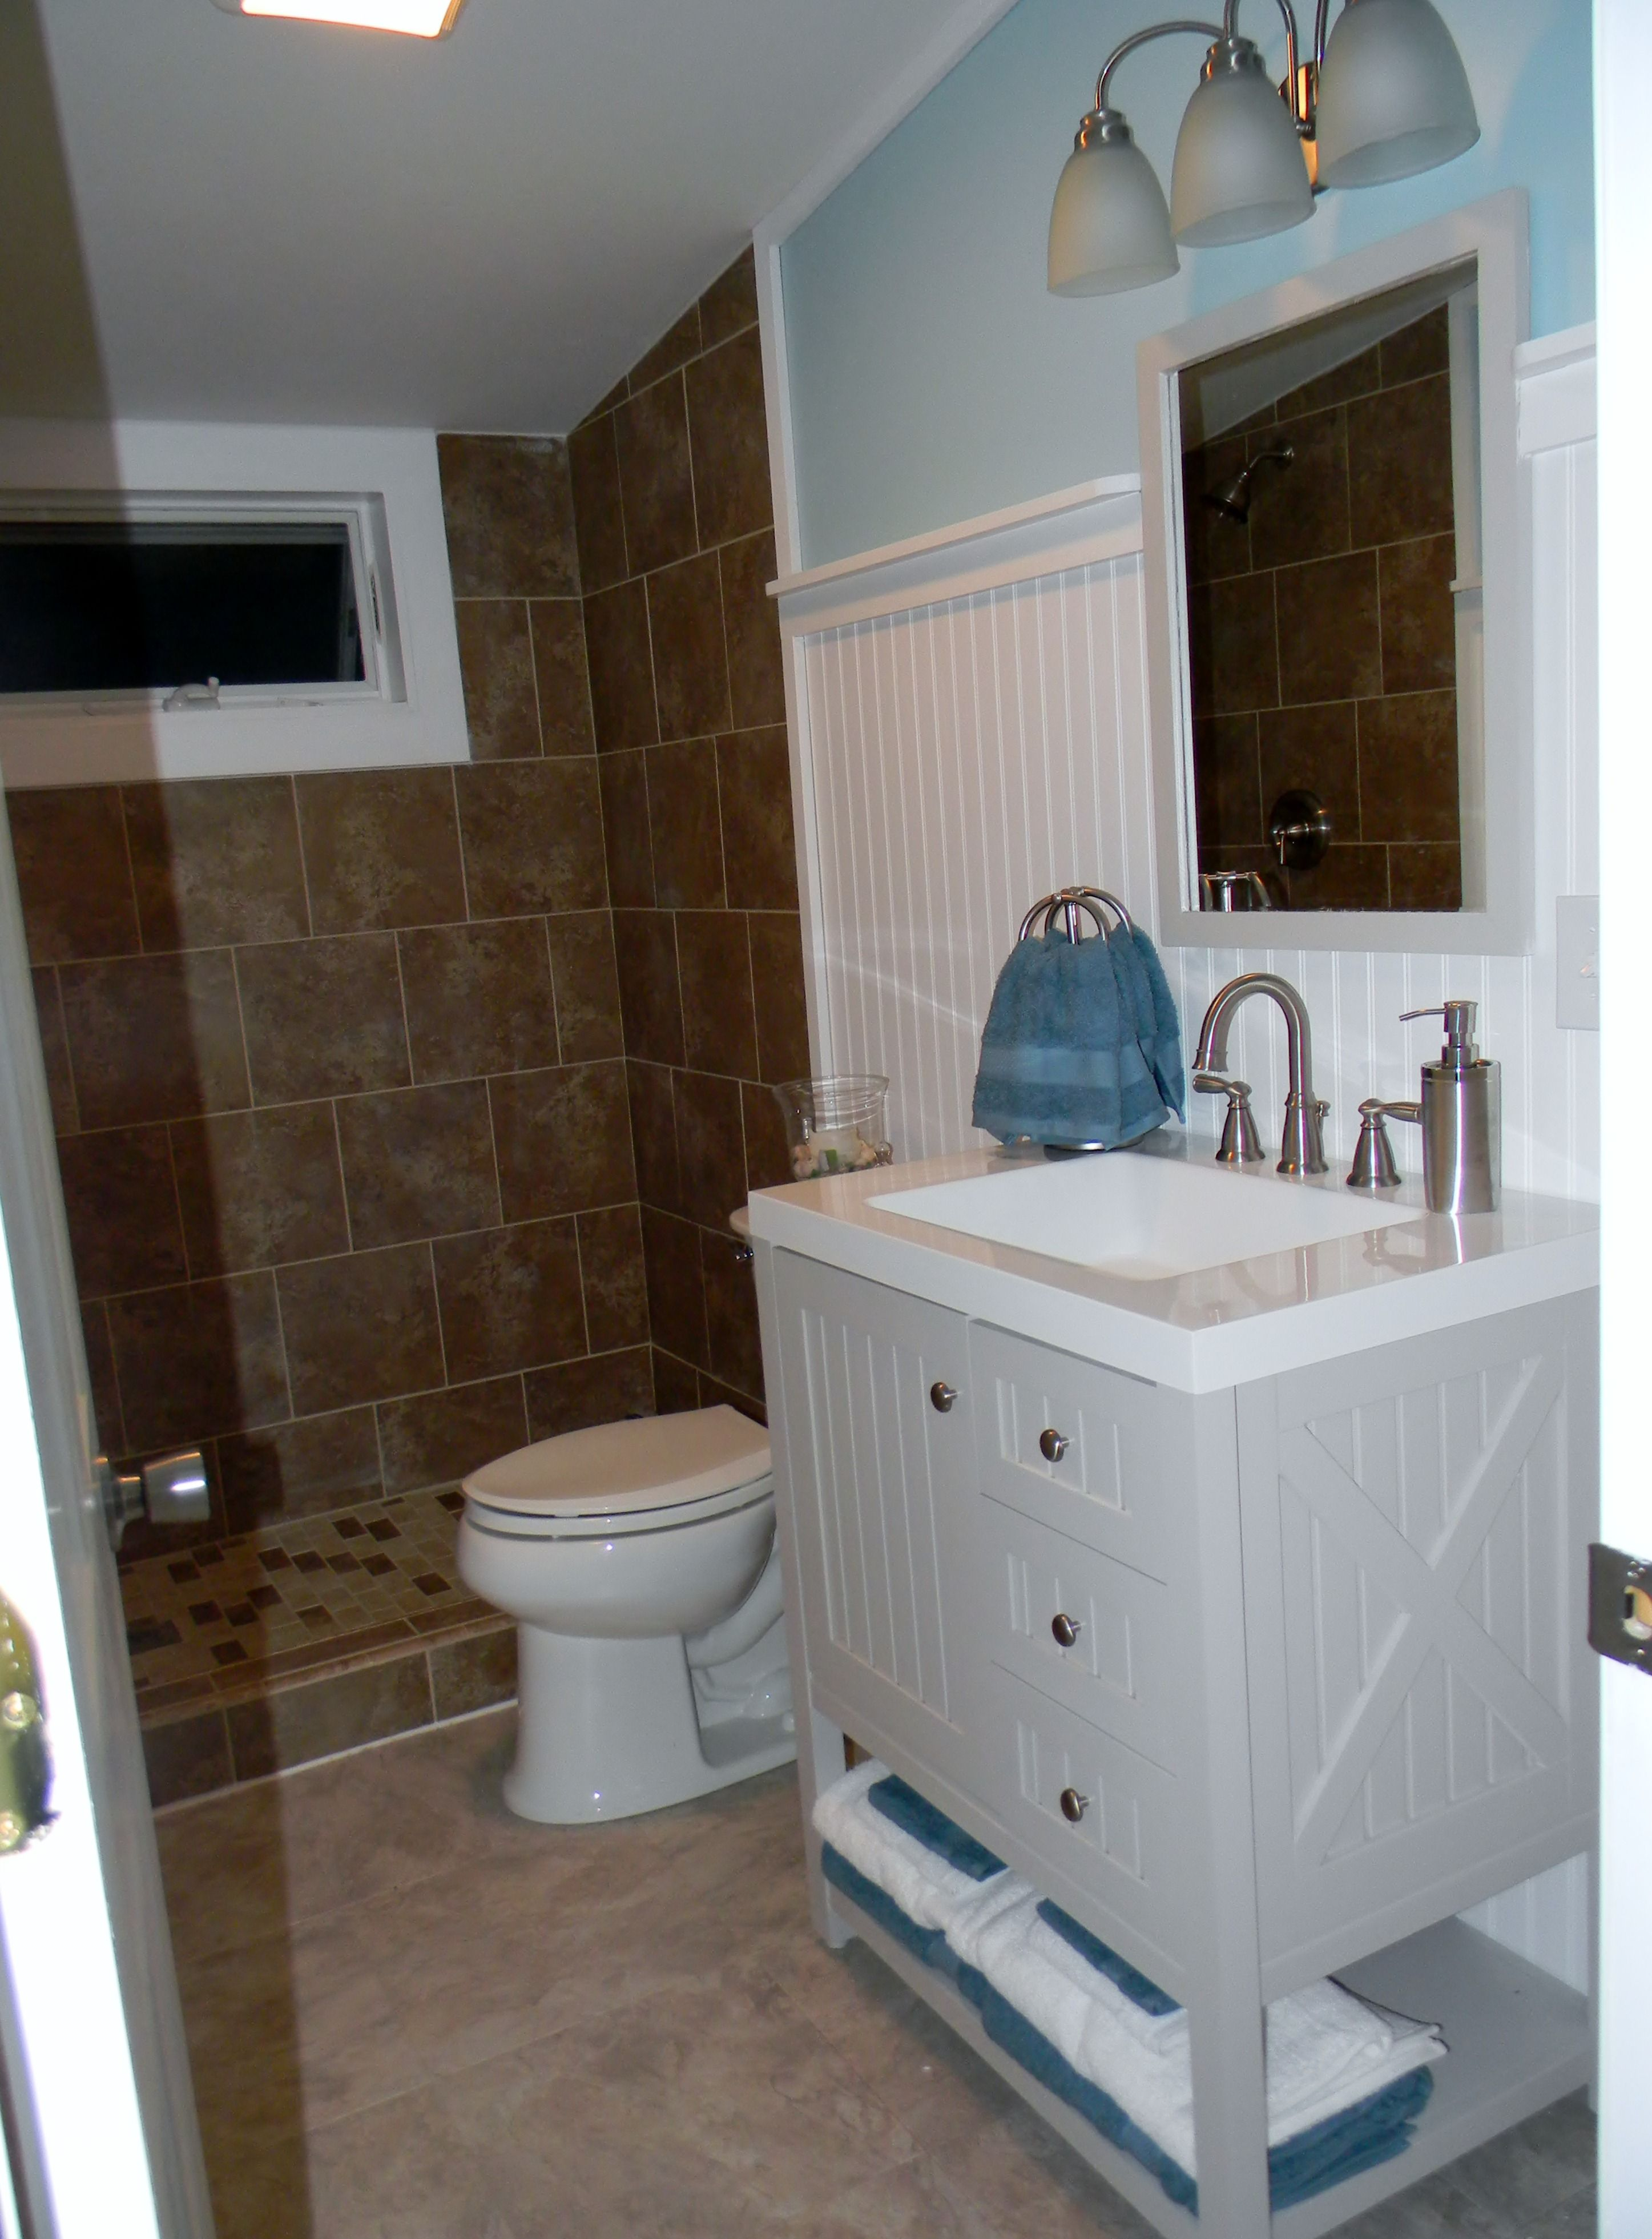 Bathroom Remodel Ideas With Beadboard : Cottage chic with beadboard bathroom remodel ideas